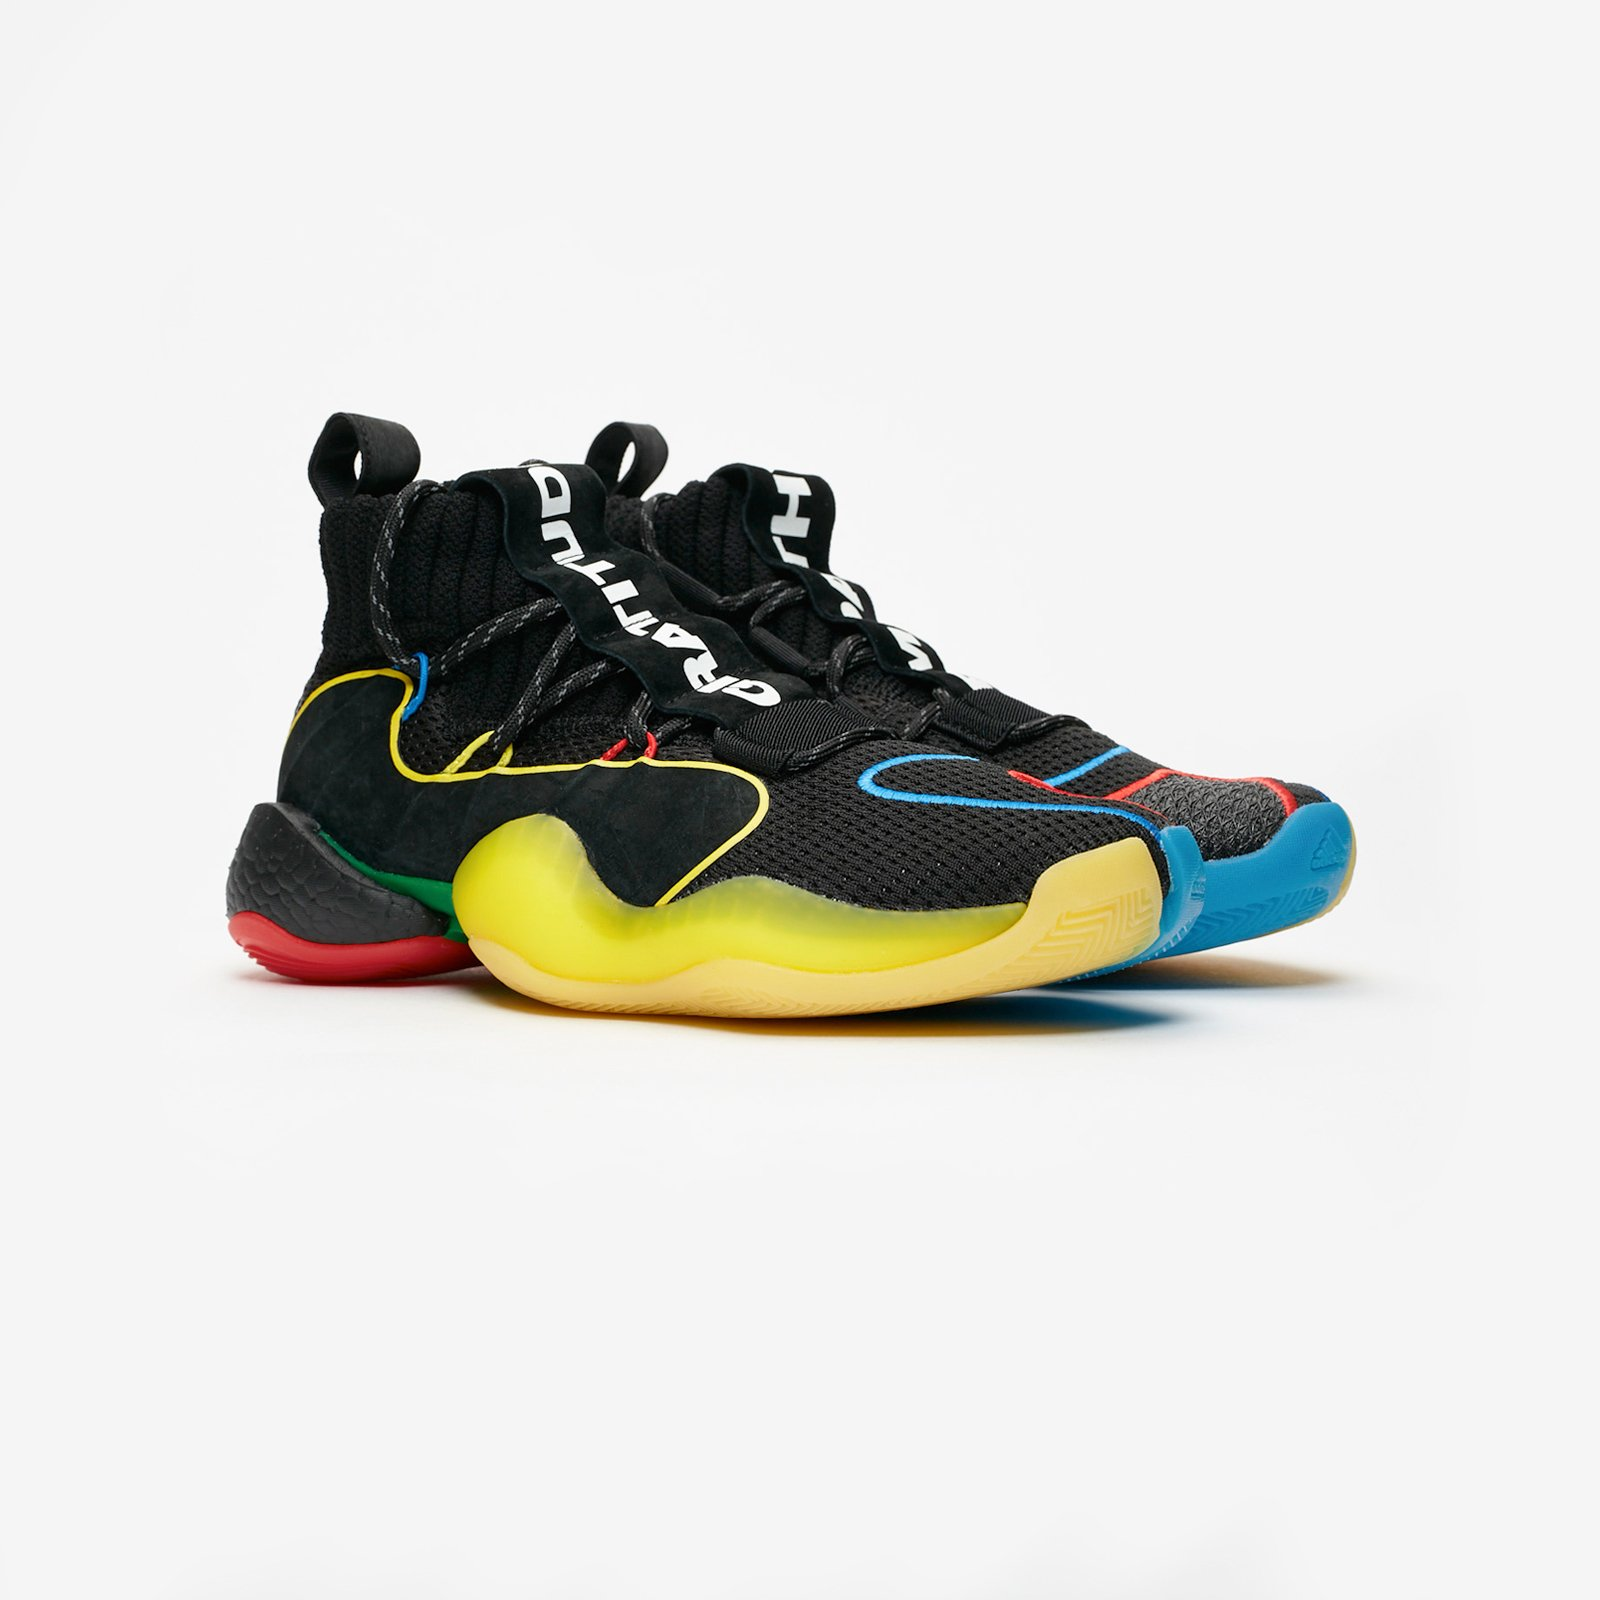 sports shoes 31b8a 4c790 adidas PW BYW LVL X - G27805 - Sneakersnstuff | sneakers ...